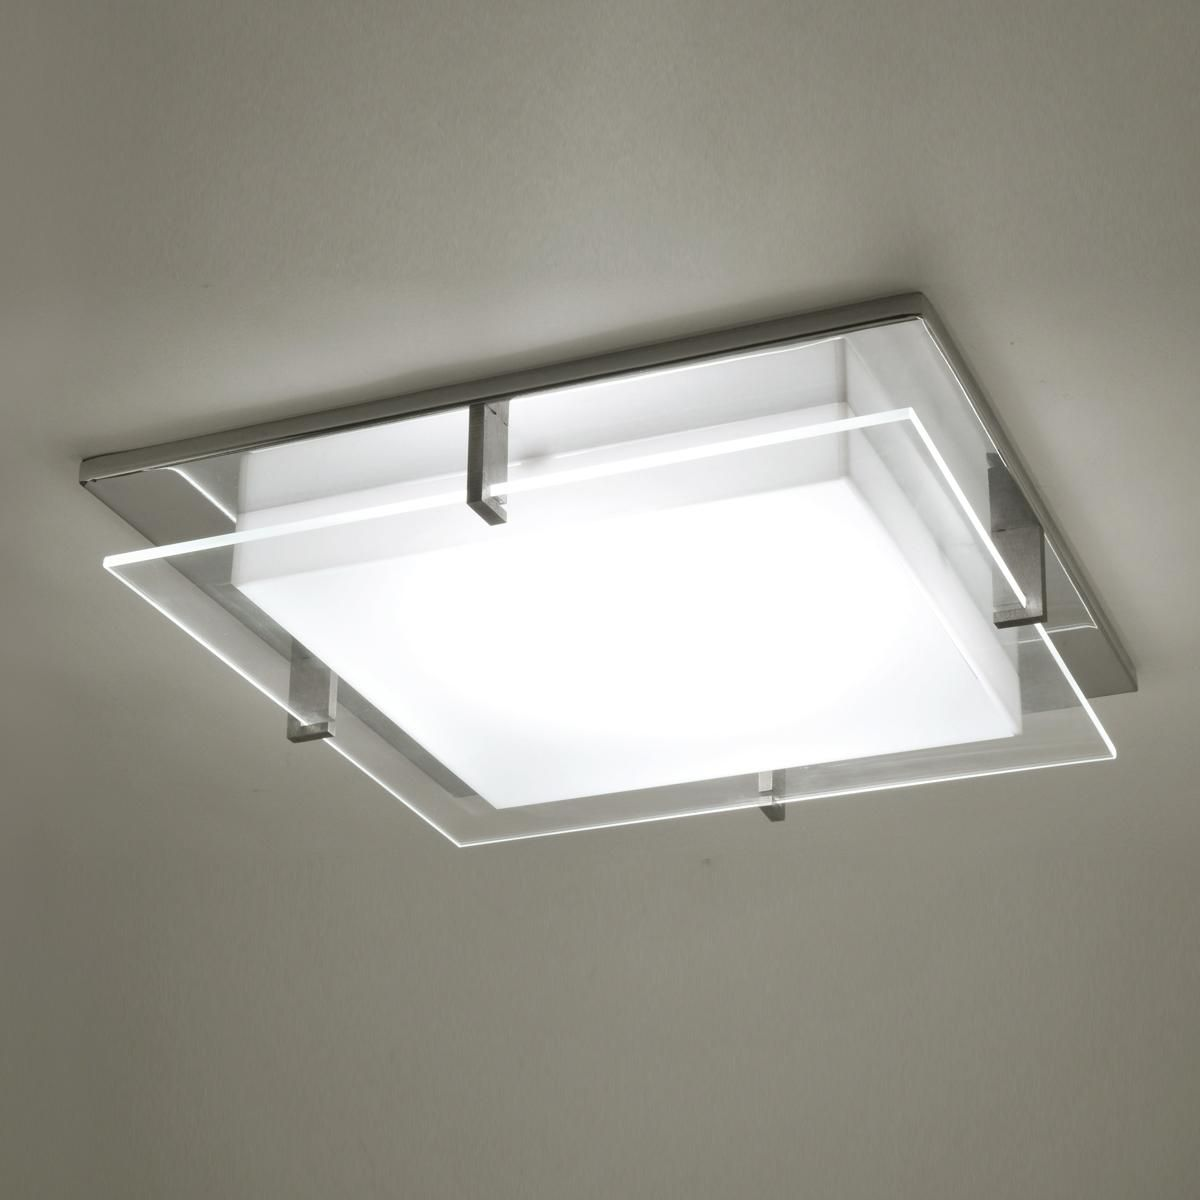 Ceiling Light Covers Modern Square Ceiling Light Adapter For Recessed Light Concept